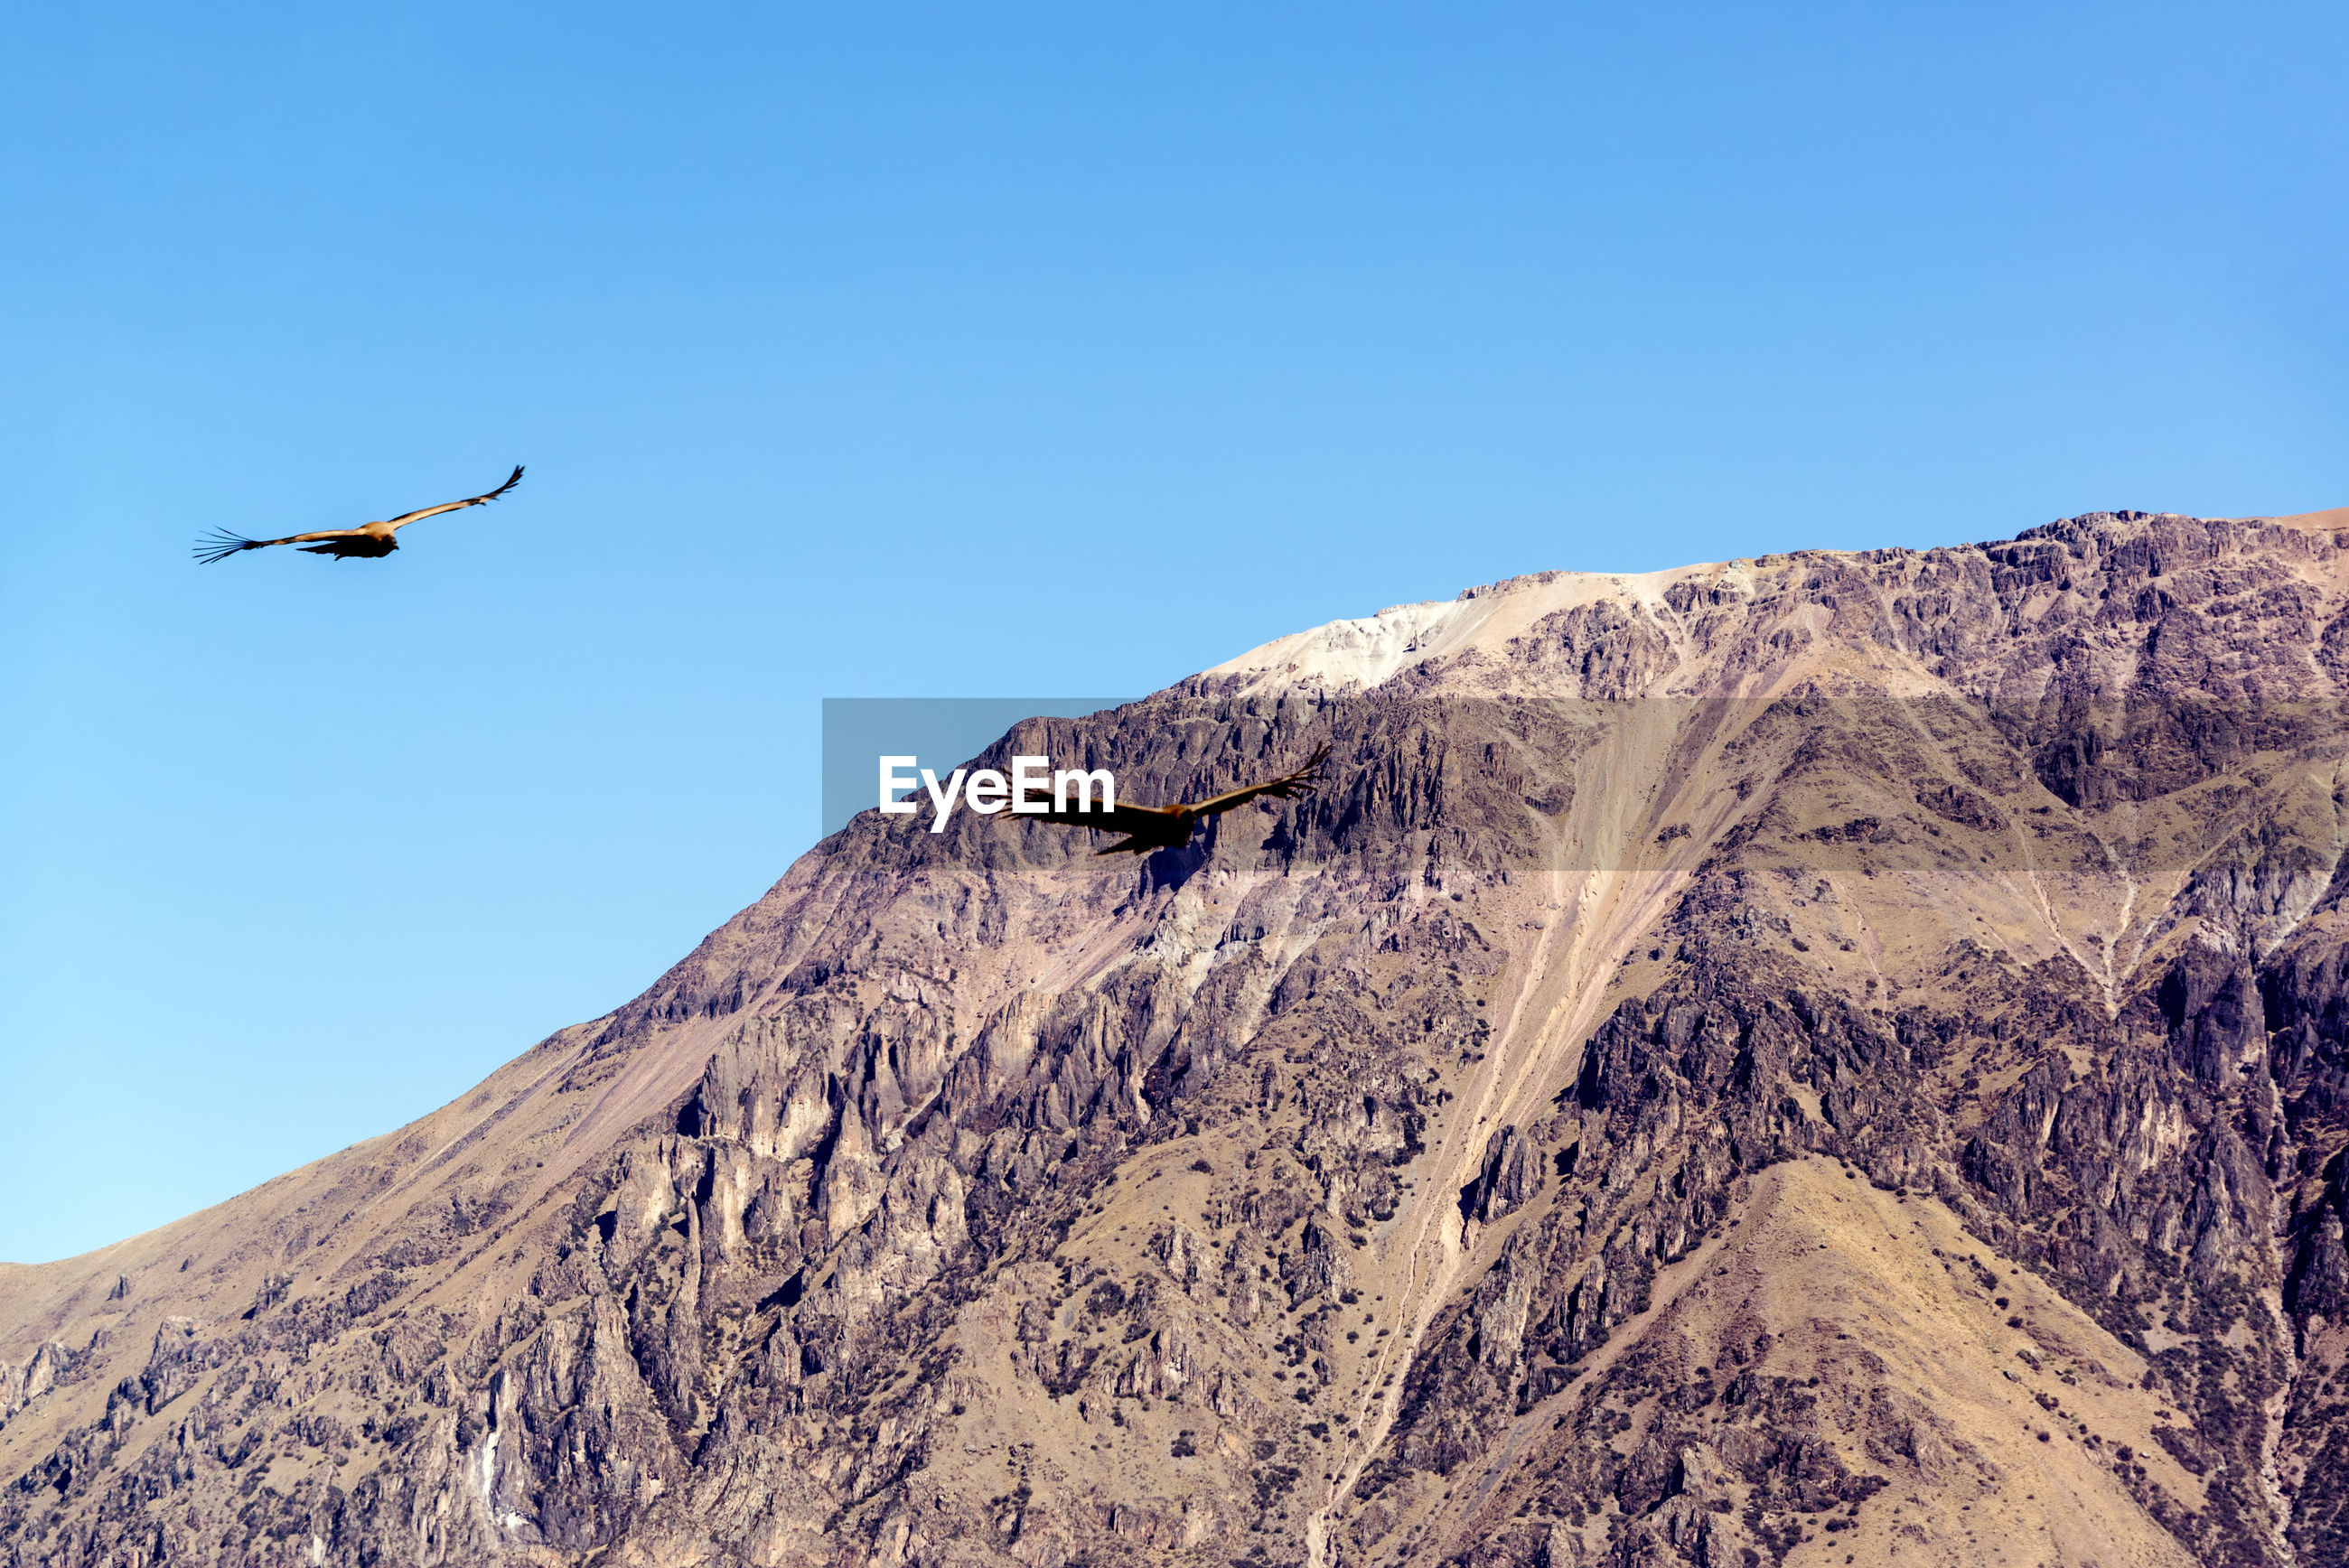 Andean condors flying over colca canyon against clear sky on sunny day